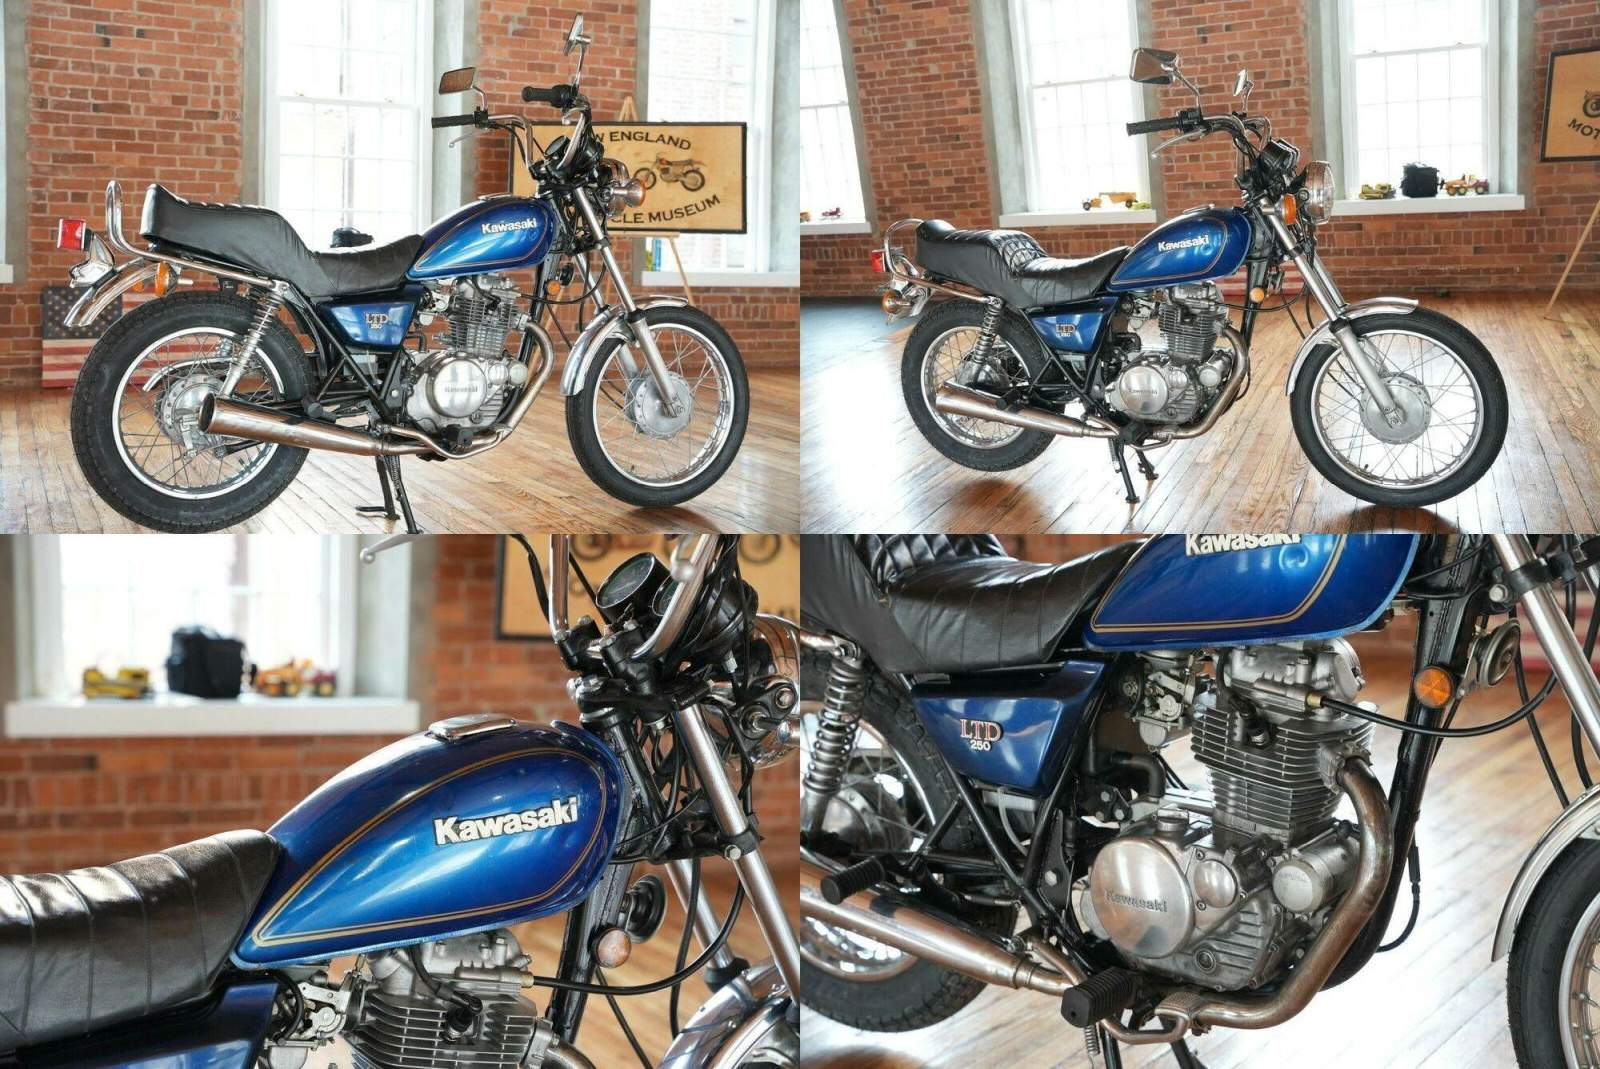 1980 Kawasaki Other  used for sale